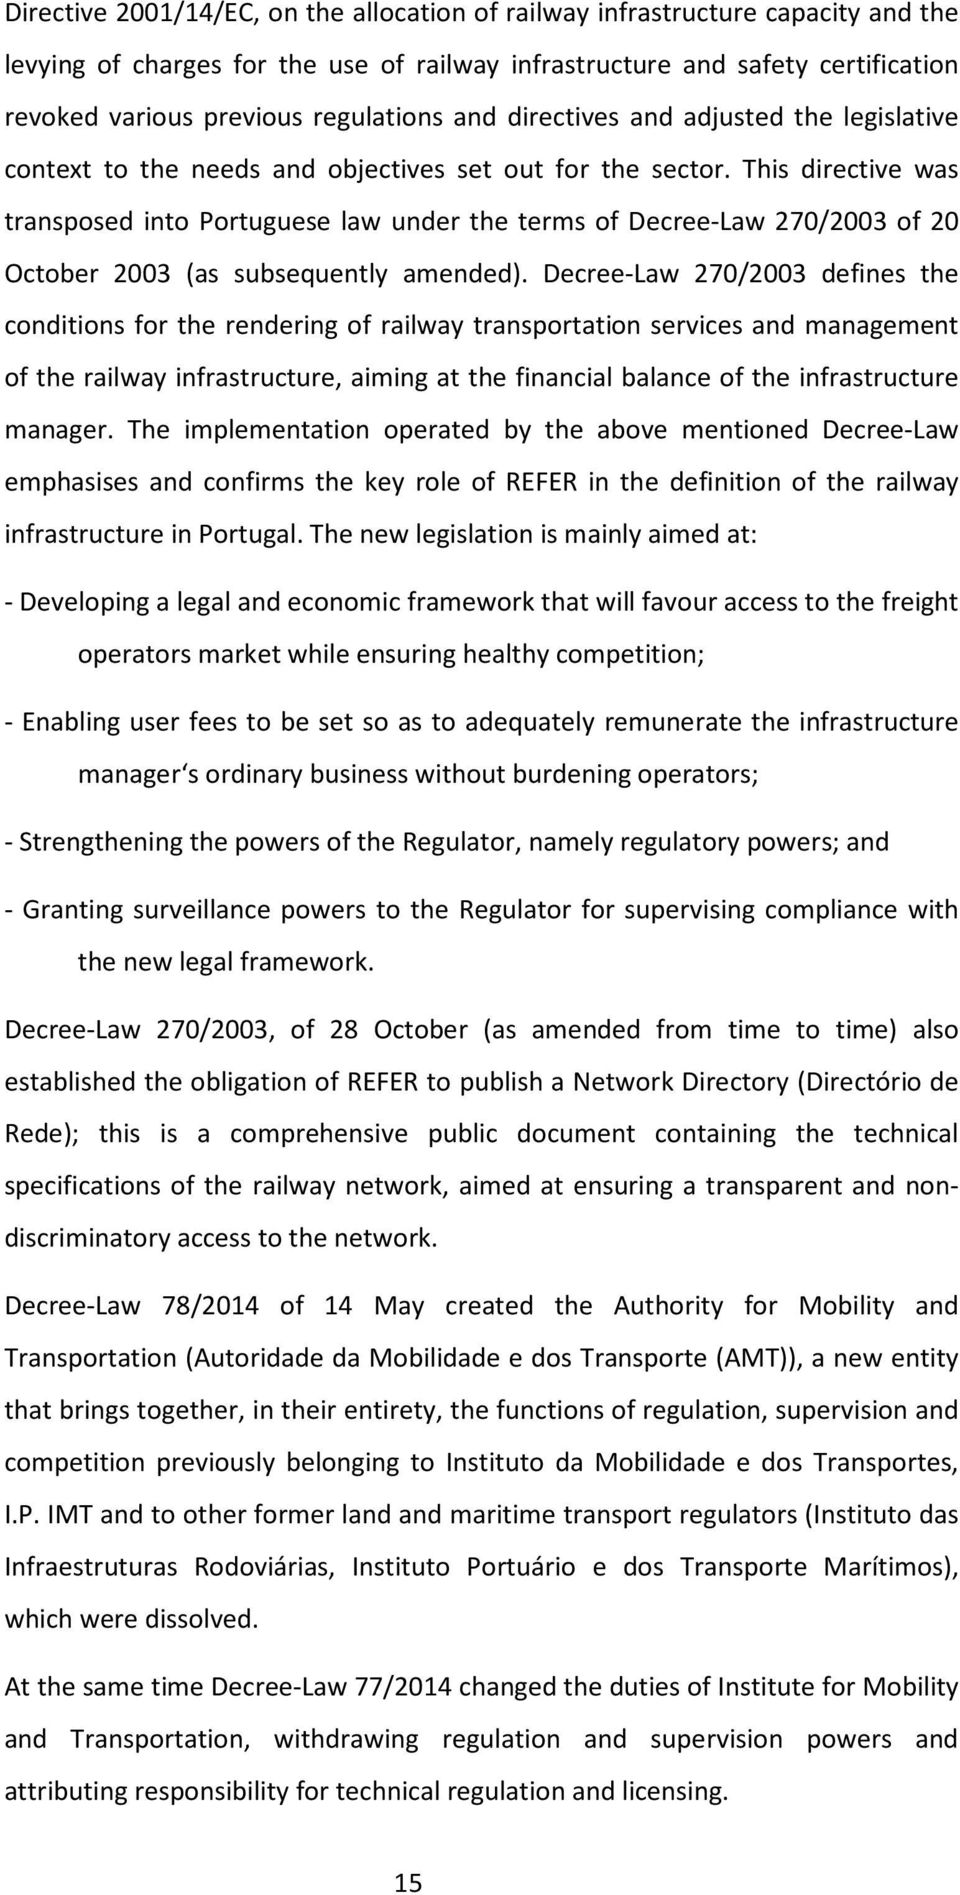 This directive was transposed into Portuguese law under the terms of Decree-Law 270/2003 of 20 October 2003 (as subsequently amended).